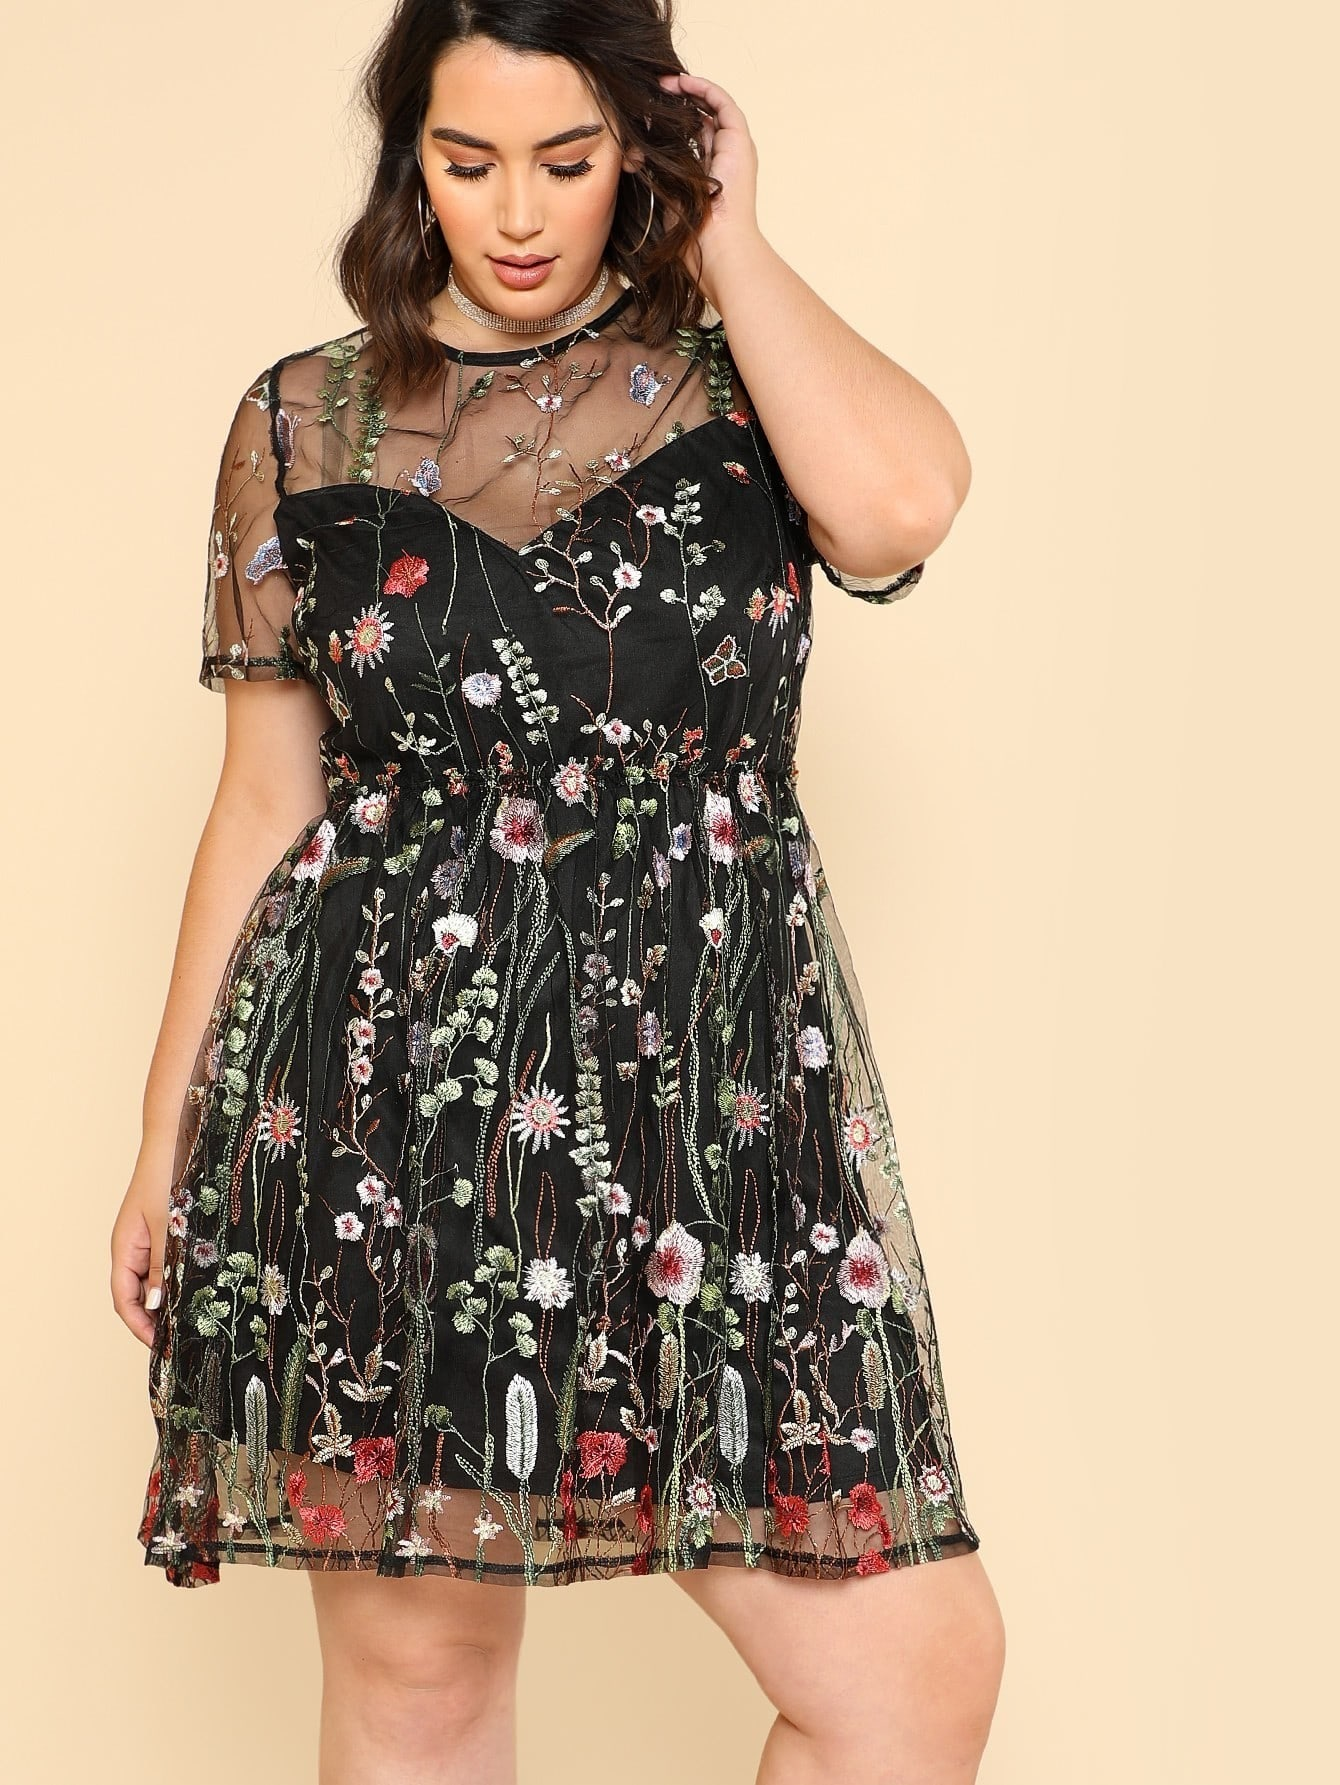 Botanical Embroidery Mesh Overlay Fit & Flare Dress applique mesh overlay fit